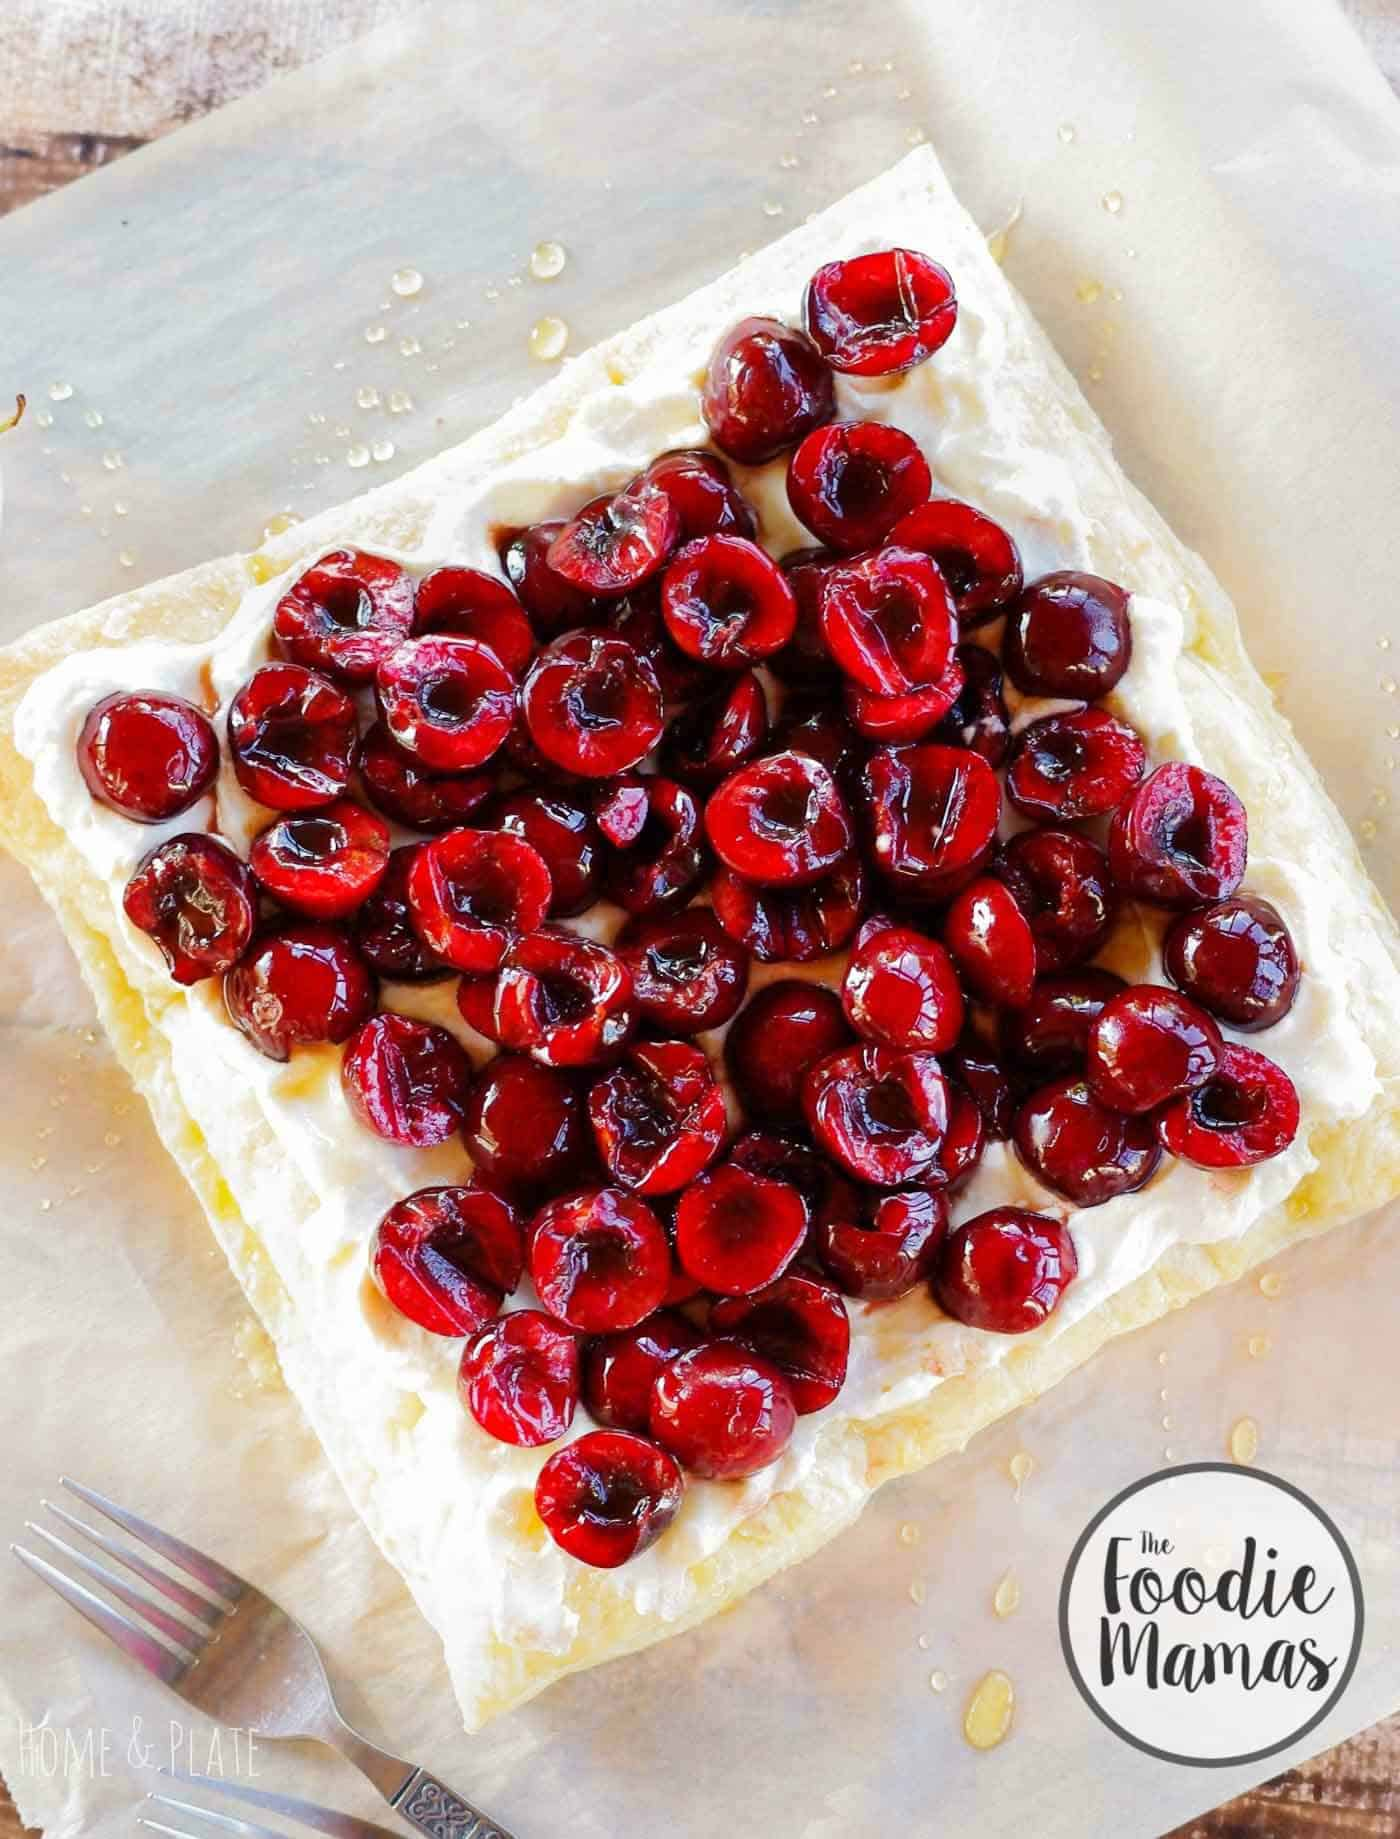 Cherry honey ricotta tart + 10 amazing holiday dessert recipes! Amazing holiday dessert recipes from your favorite food bloggers, The Foodie Mamas!